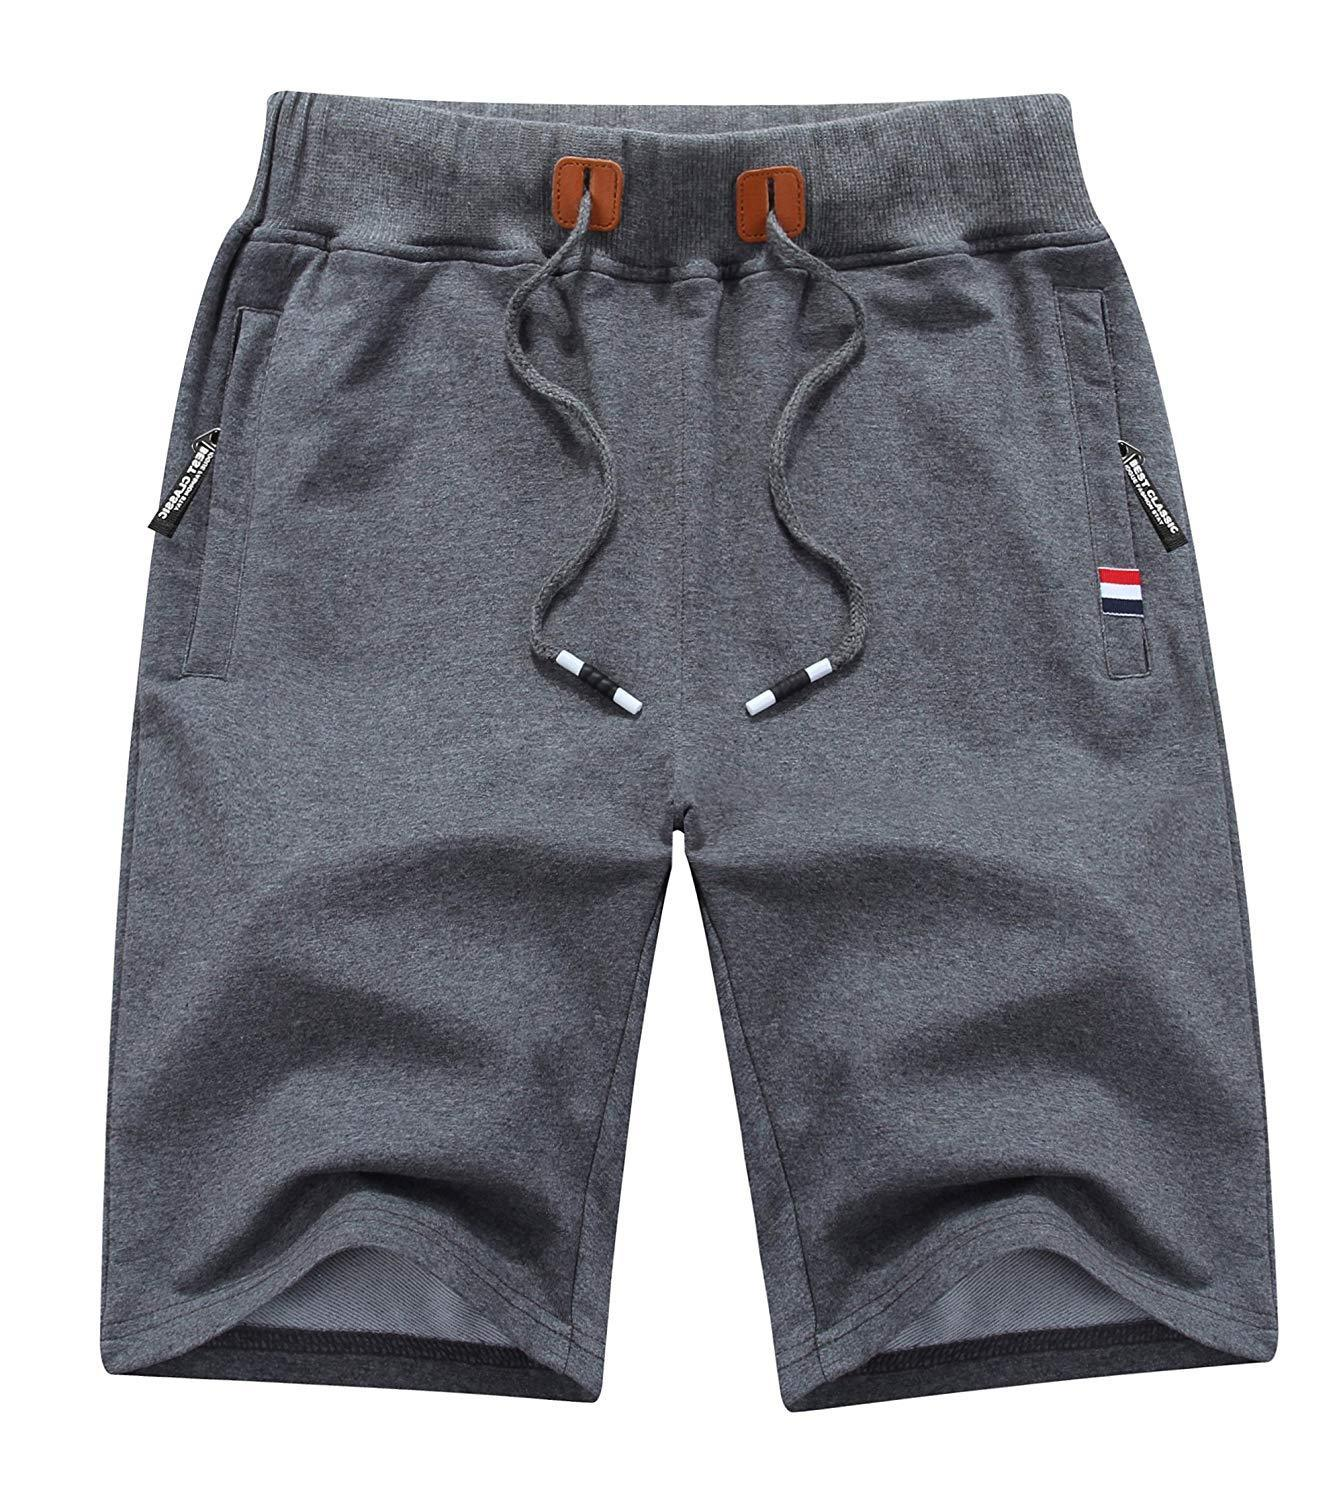 Mens Casual Shorts (50% OFF) Buy two free shipping